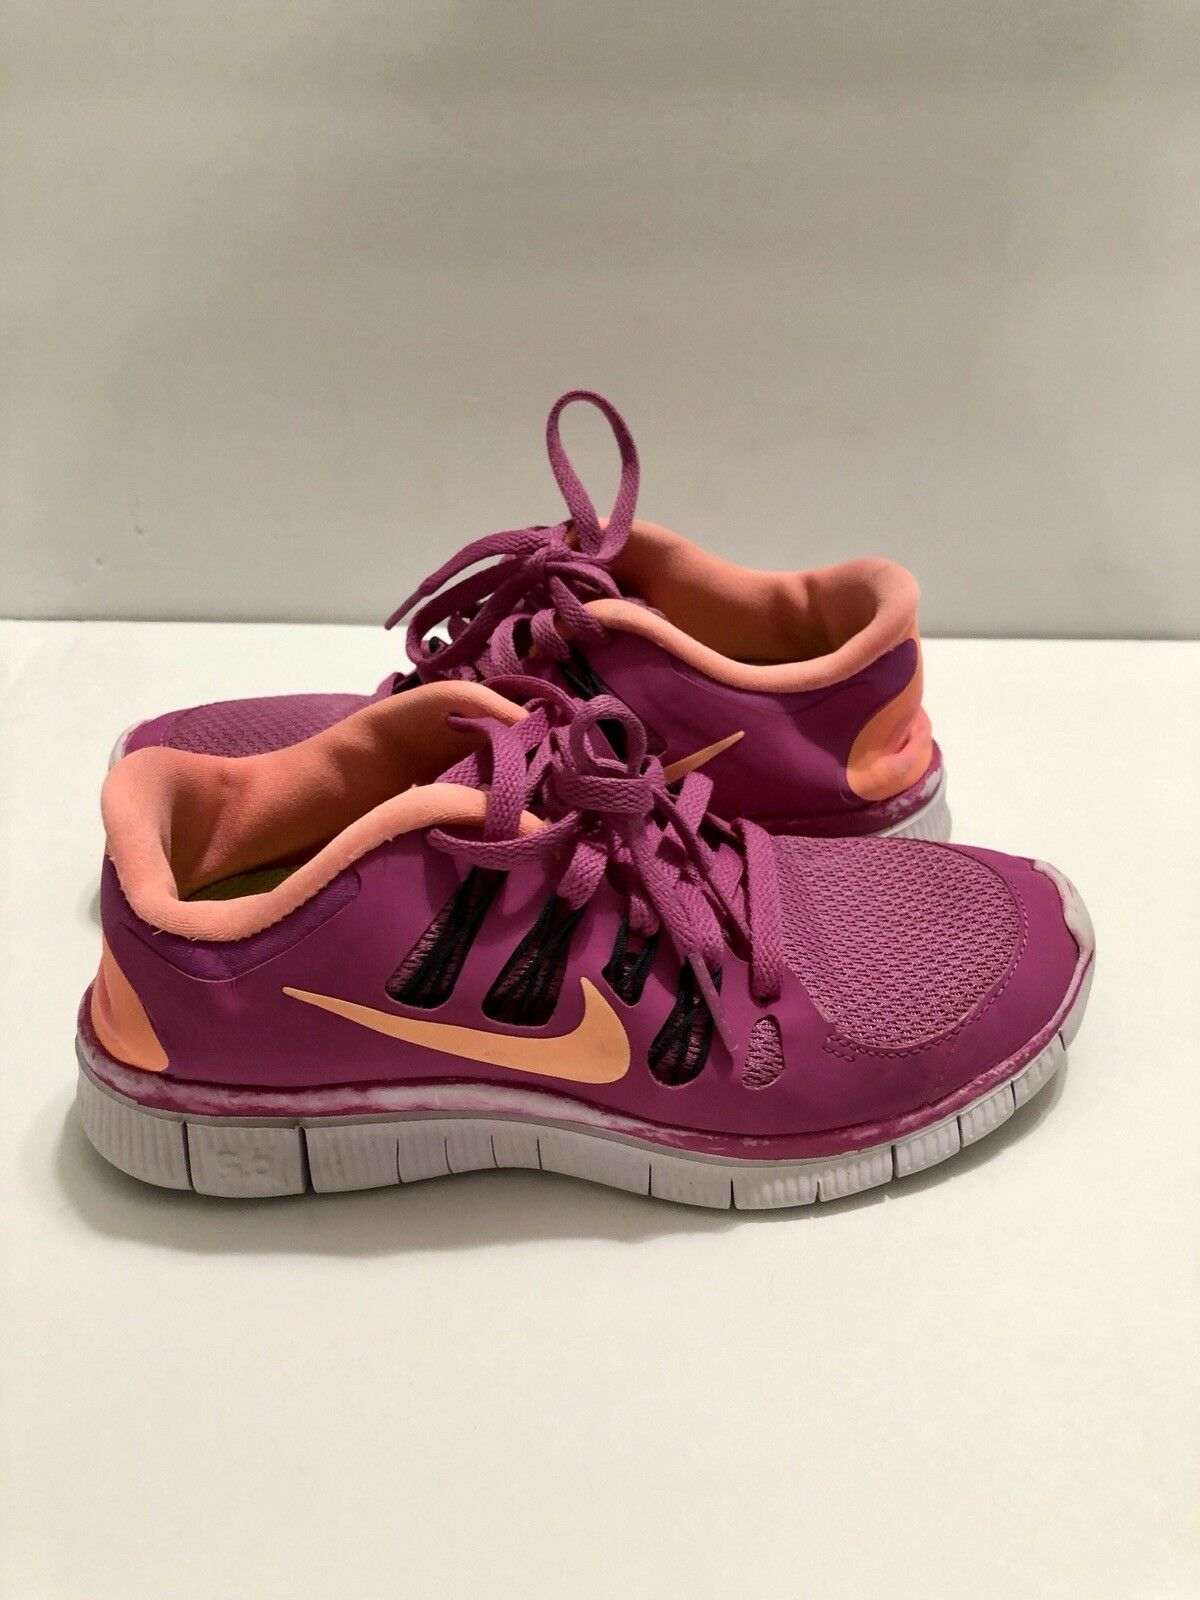 Nike Shoes Color Pink Size  U.S Women 6